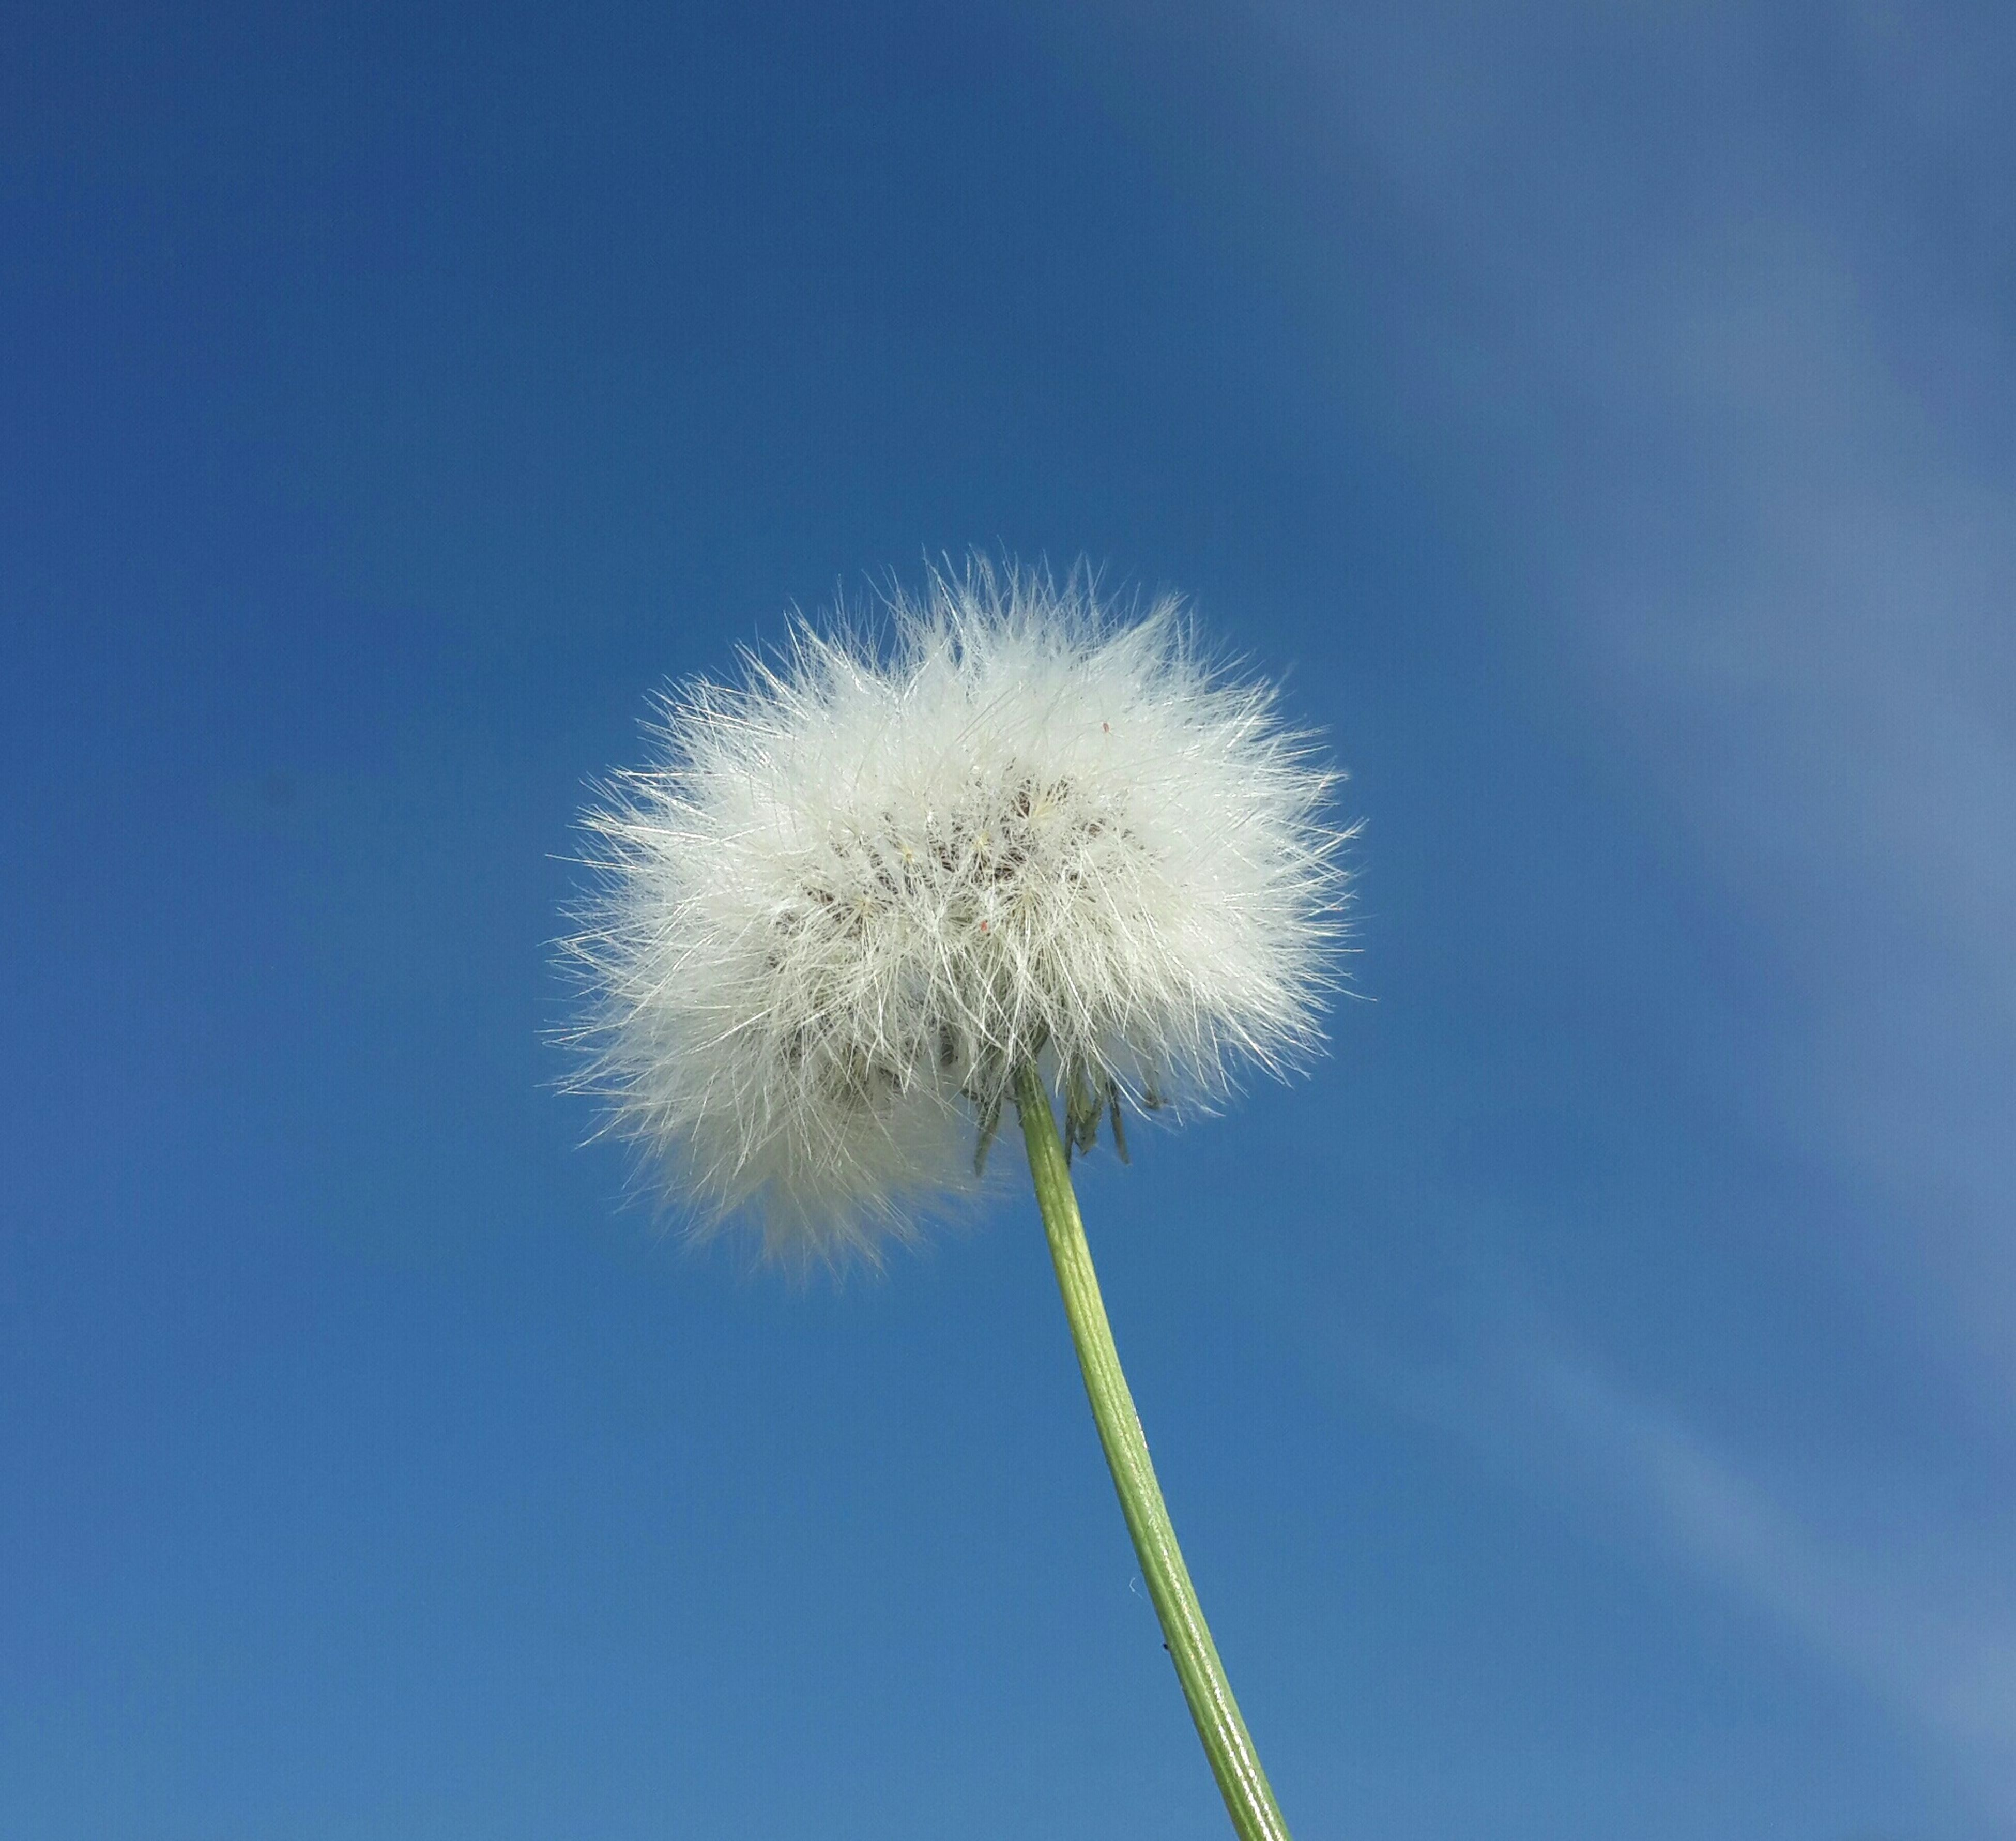 dandelion, flower, fragility, stem, growth, low angle view, flower head, freshness, nature, single flower, beauty in nature, softness, dandelion seed, close-up, blue, clear sky, seed, uncultivated, sky, day